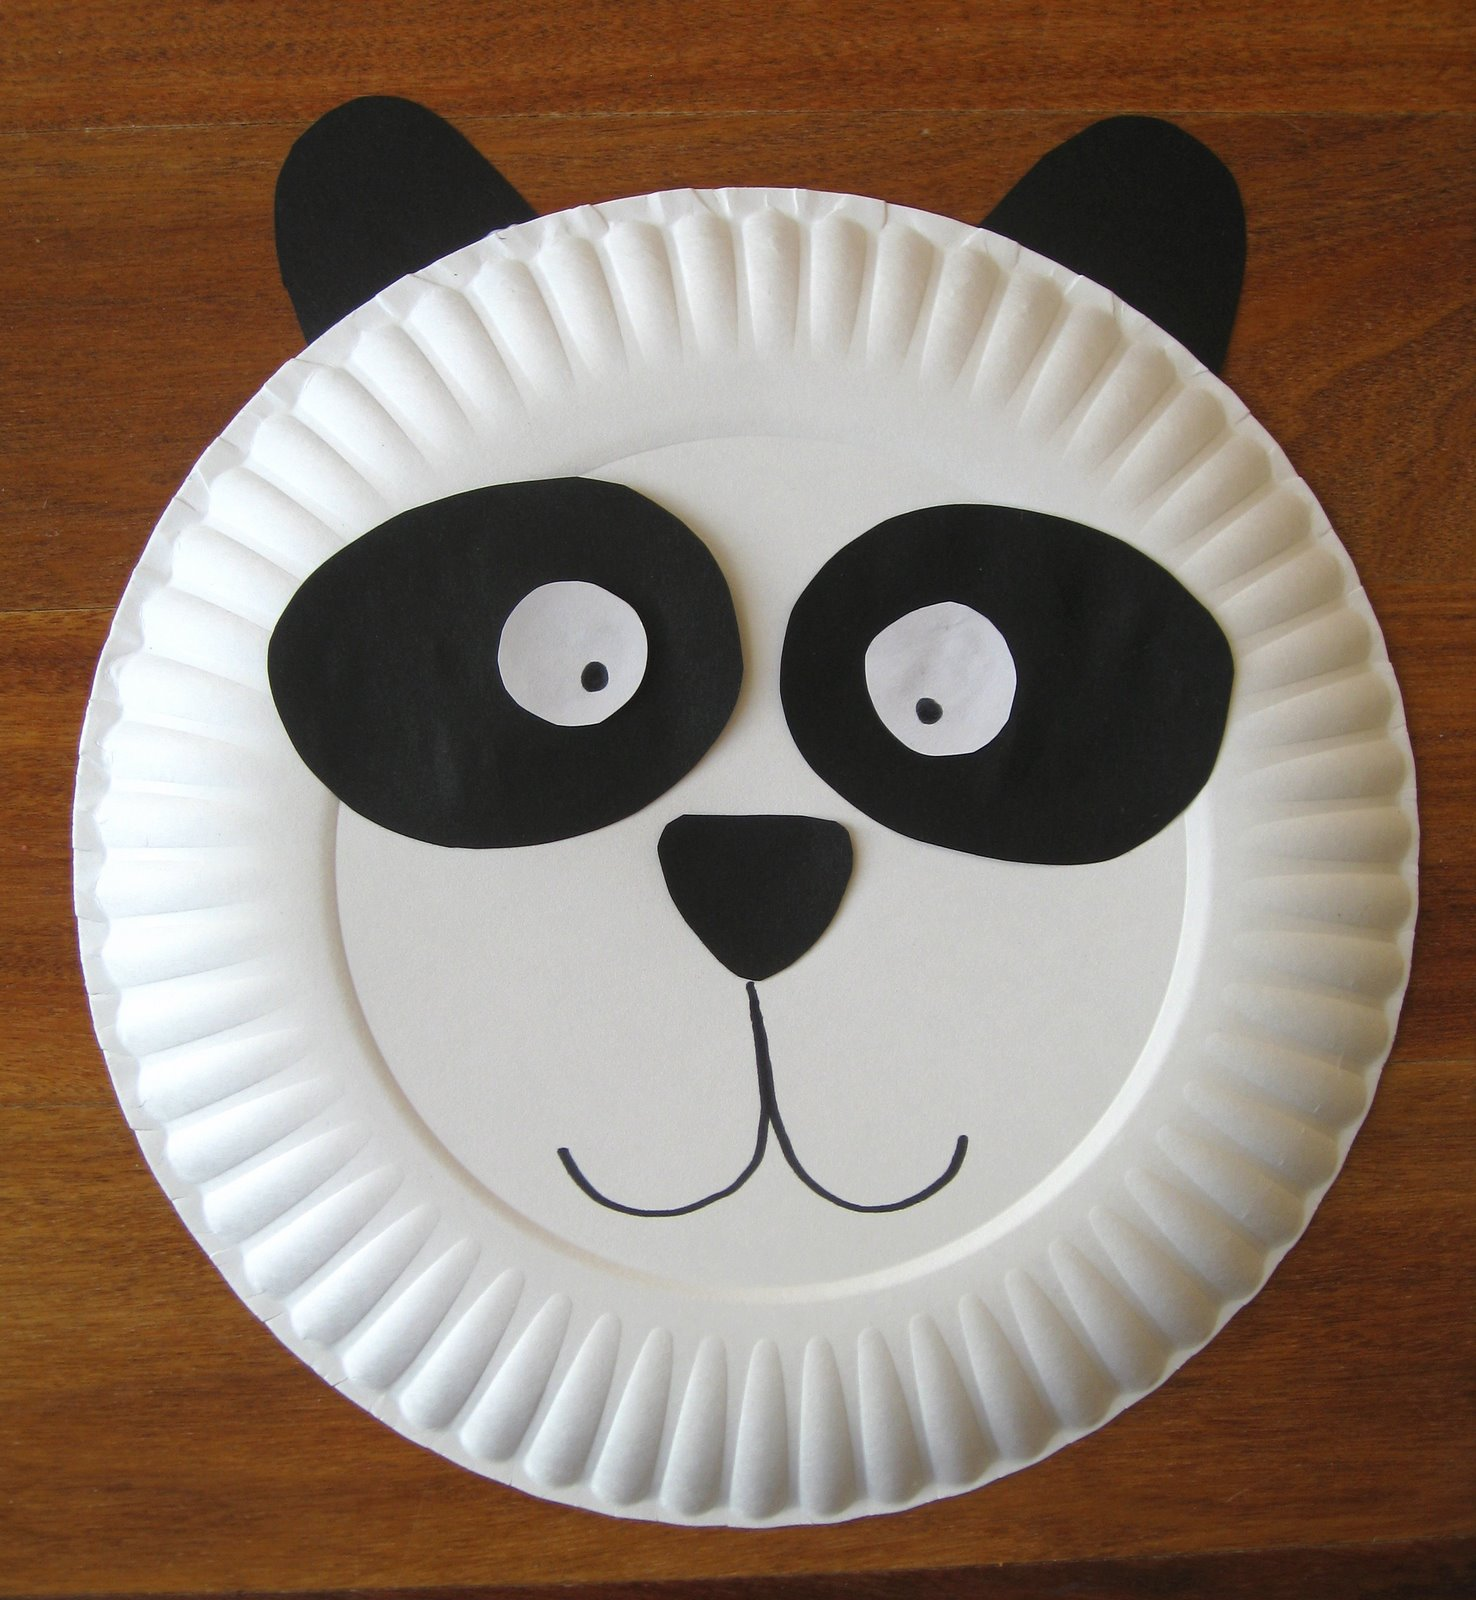 DIY Paper Plates Crafts For Kids